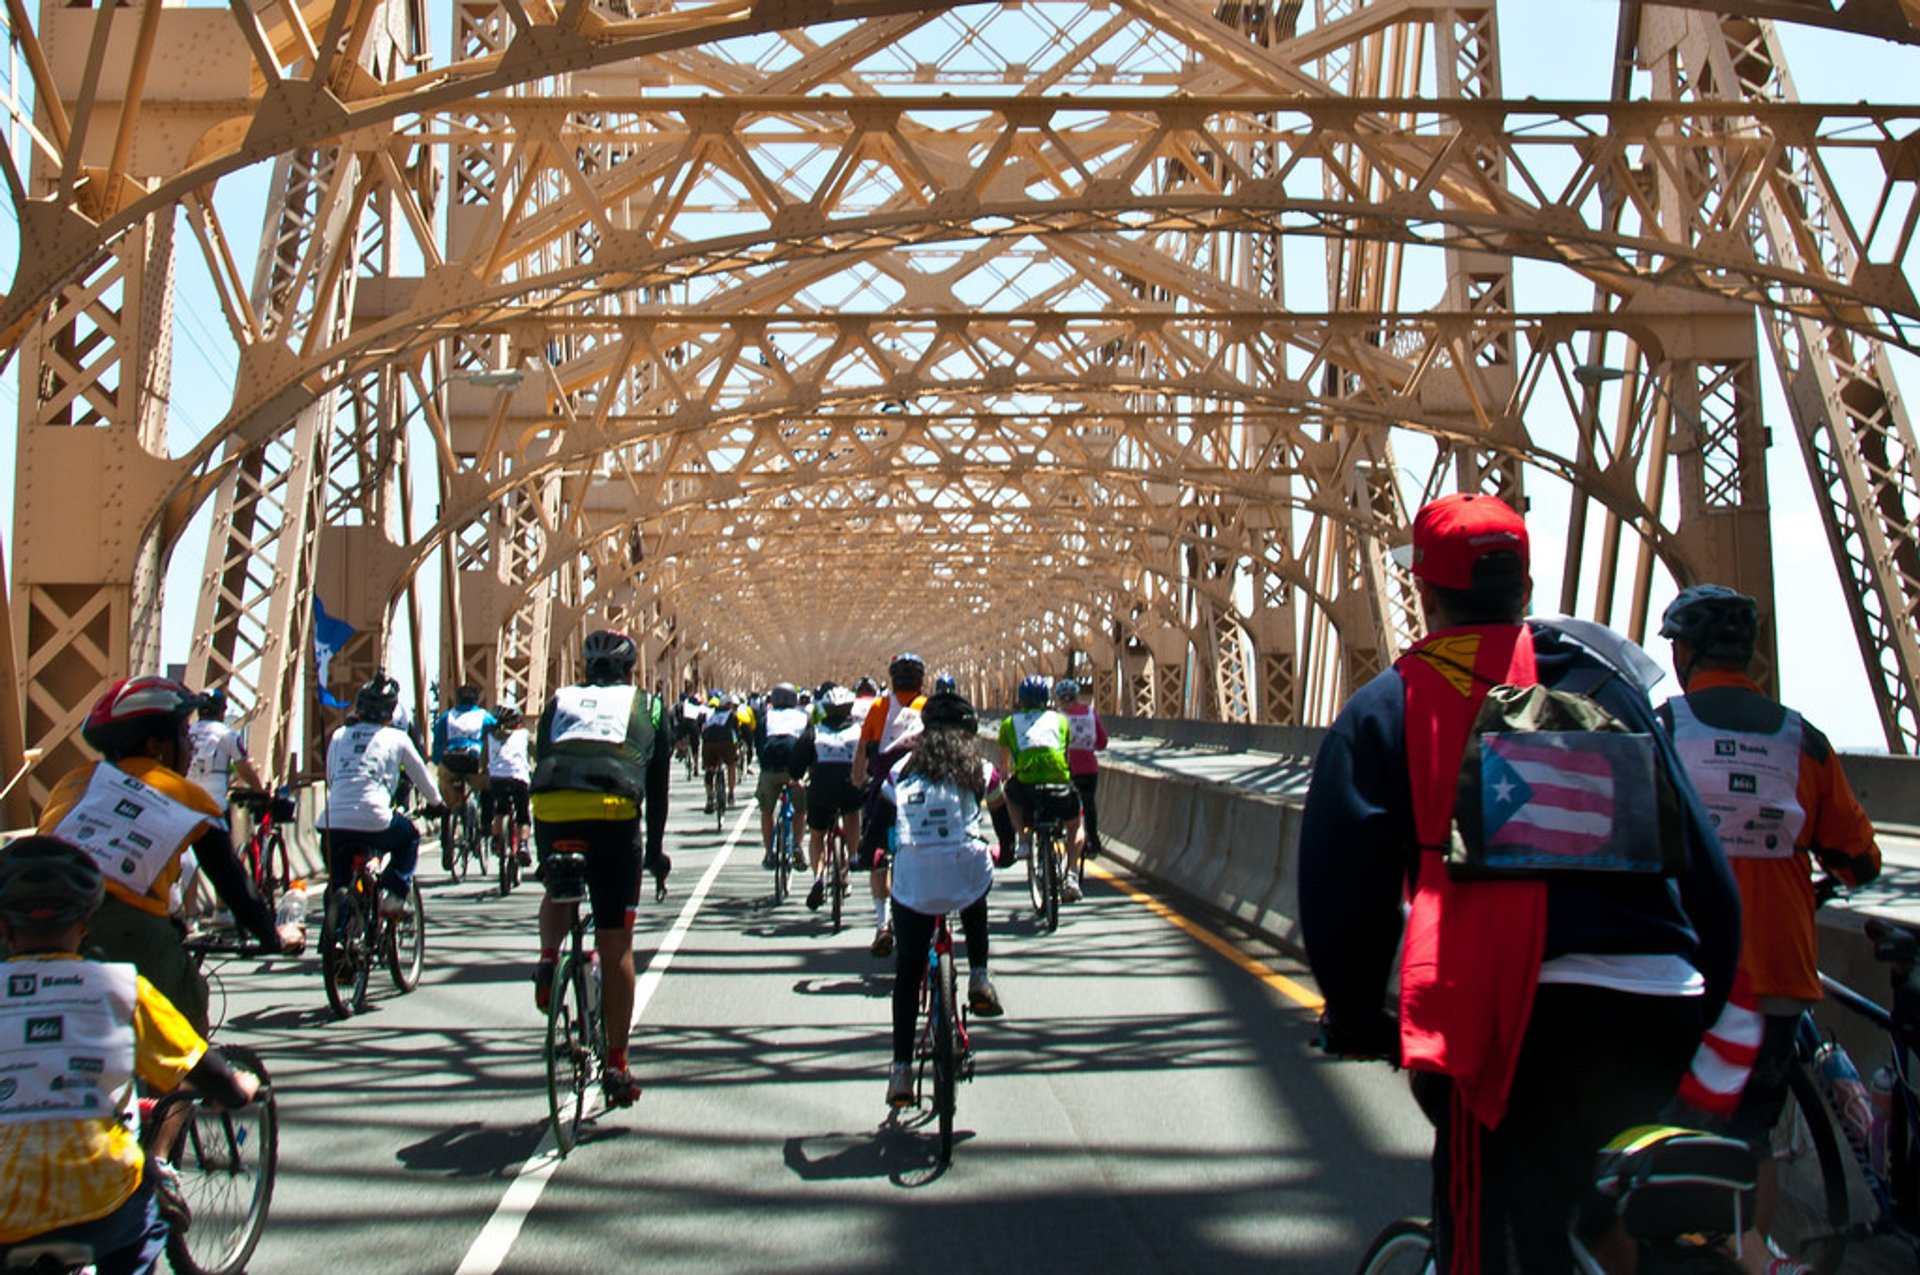 Five Boro Bike Tour in New York - Best Season 2019